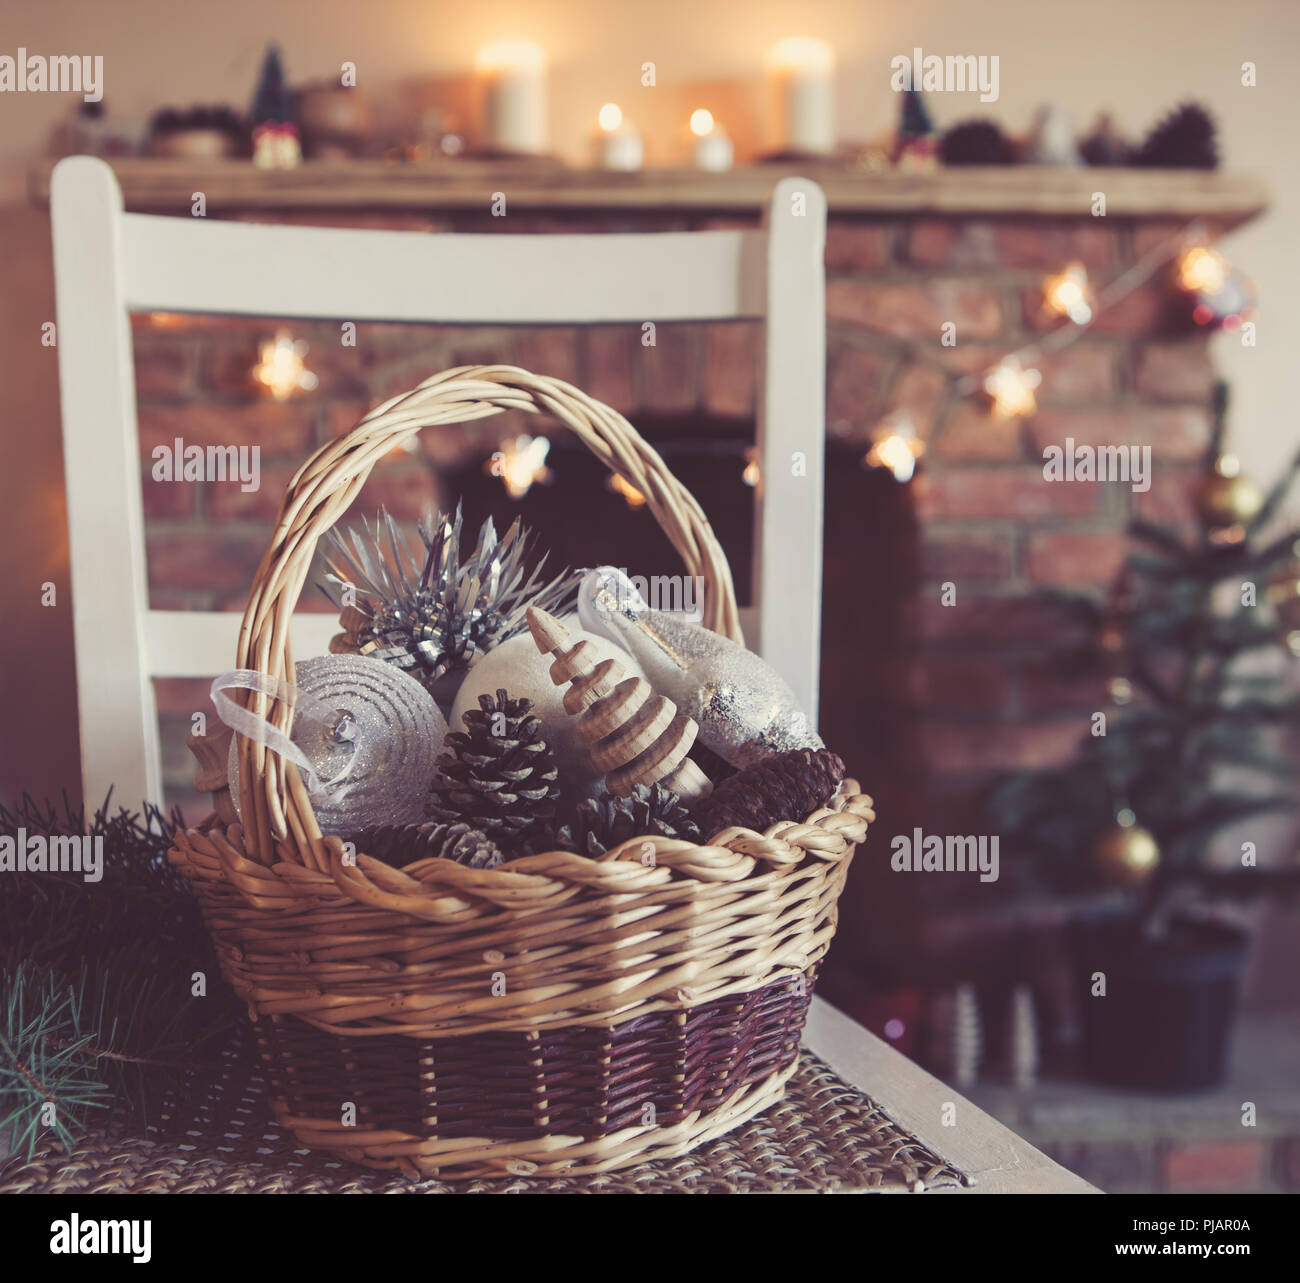 christmas decorations in the in the basket the fireplace on the background with candles an baubles selective focus